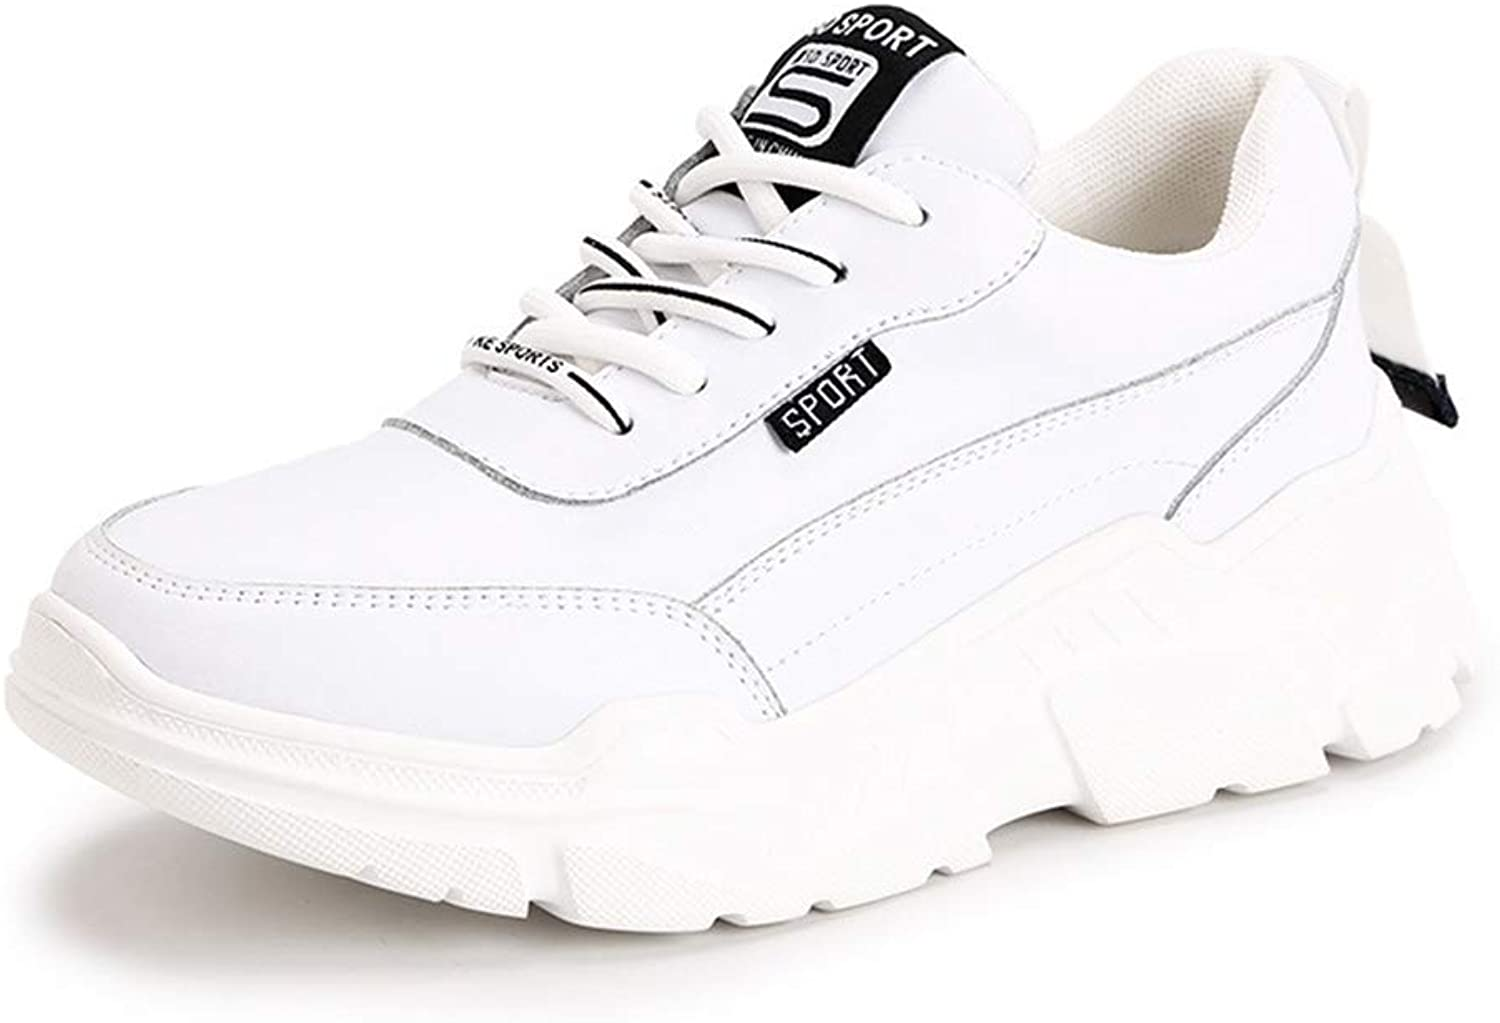 Women's Sneakers Leather Running shoes Low-Top Casual shoes Fashion Deck shoes Athletic shoes Fitness & Cross Training shoes,White,36